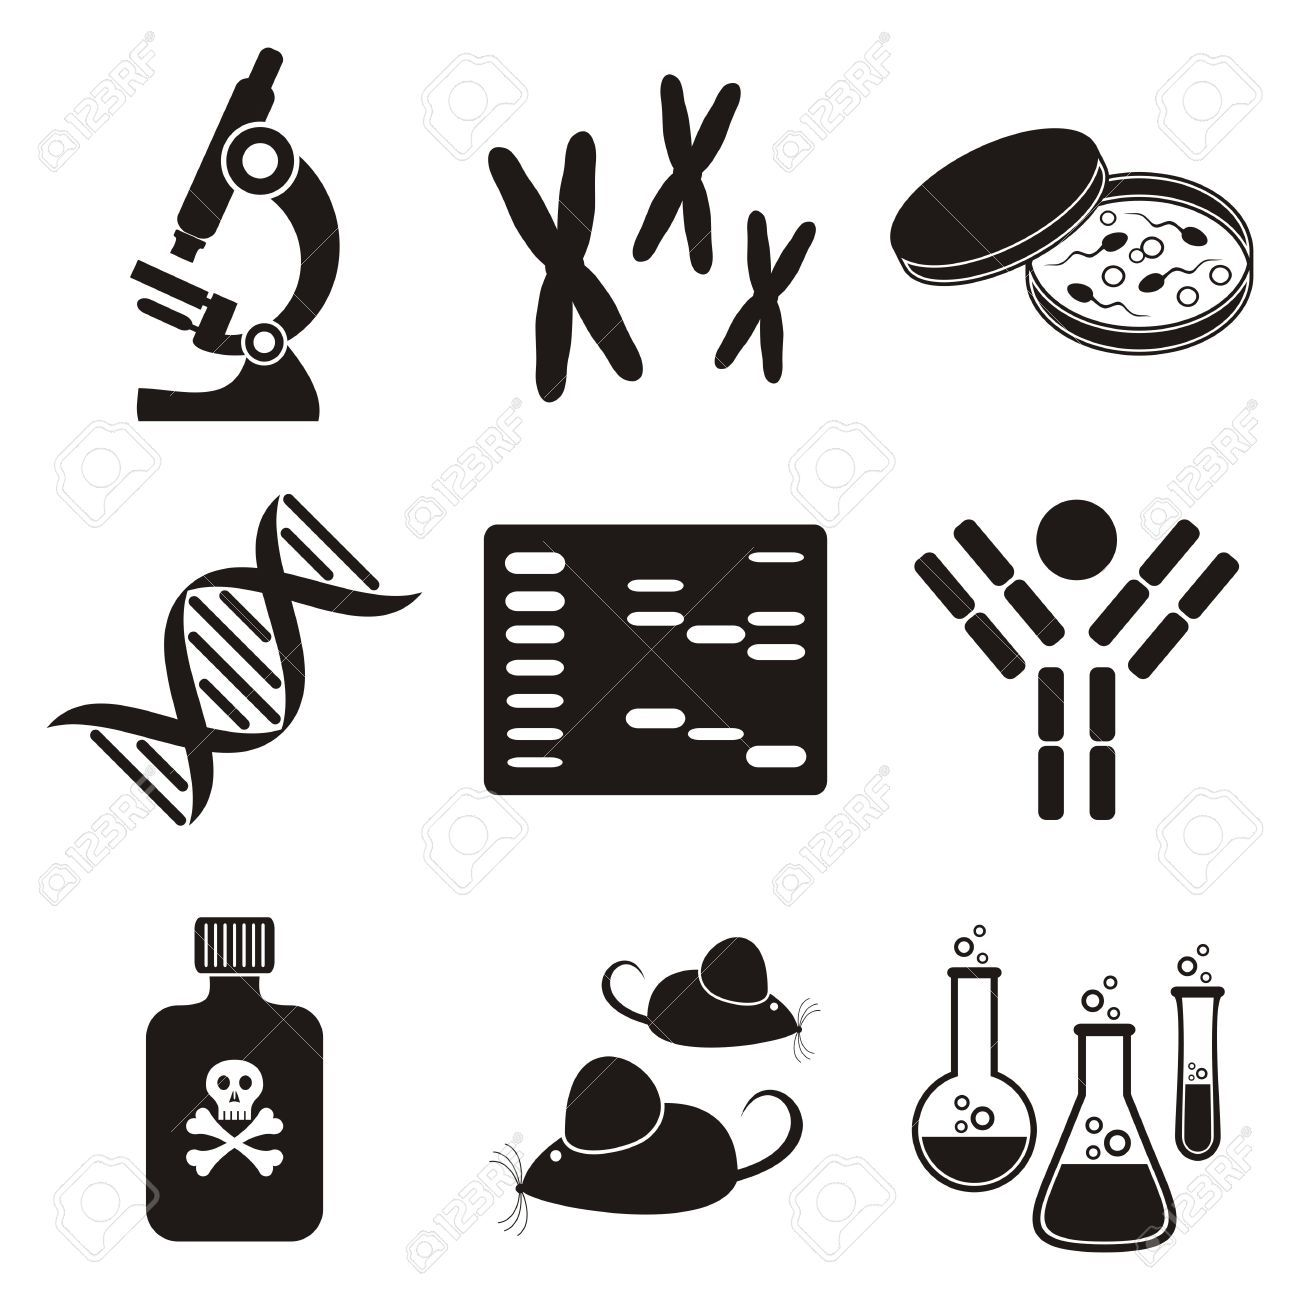 Biology clipart genetic engineering, Biology genetic